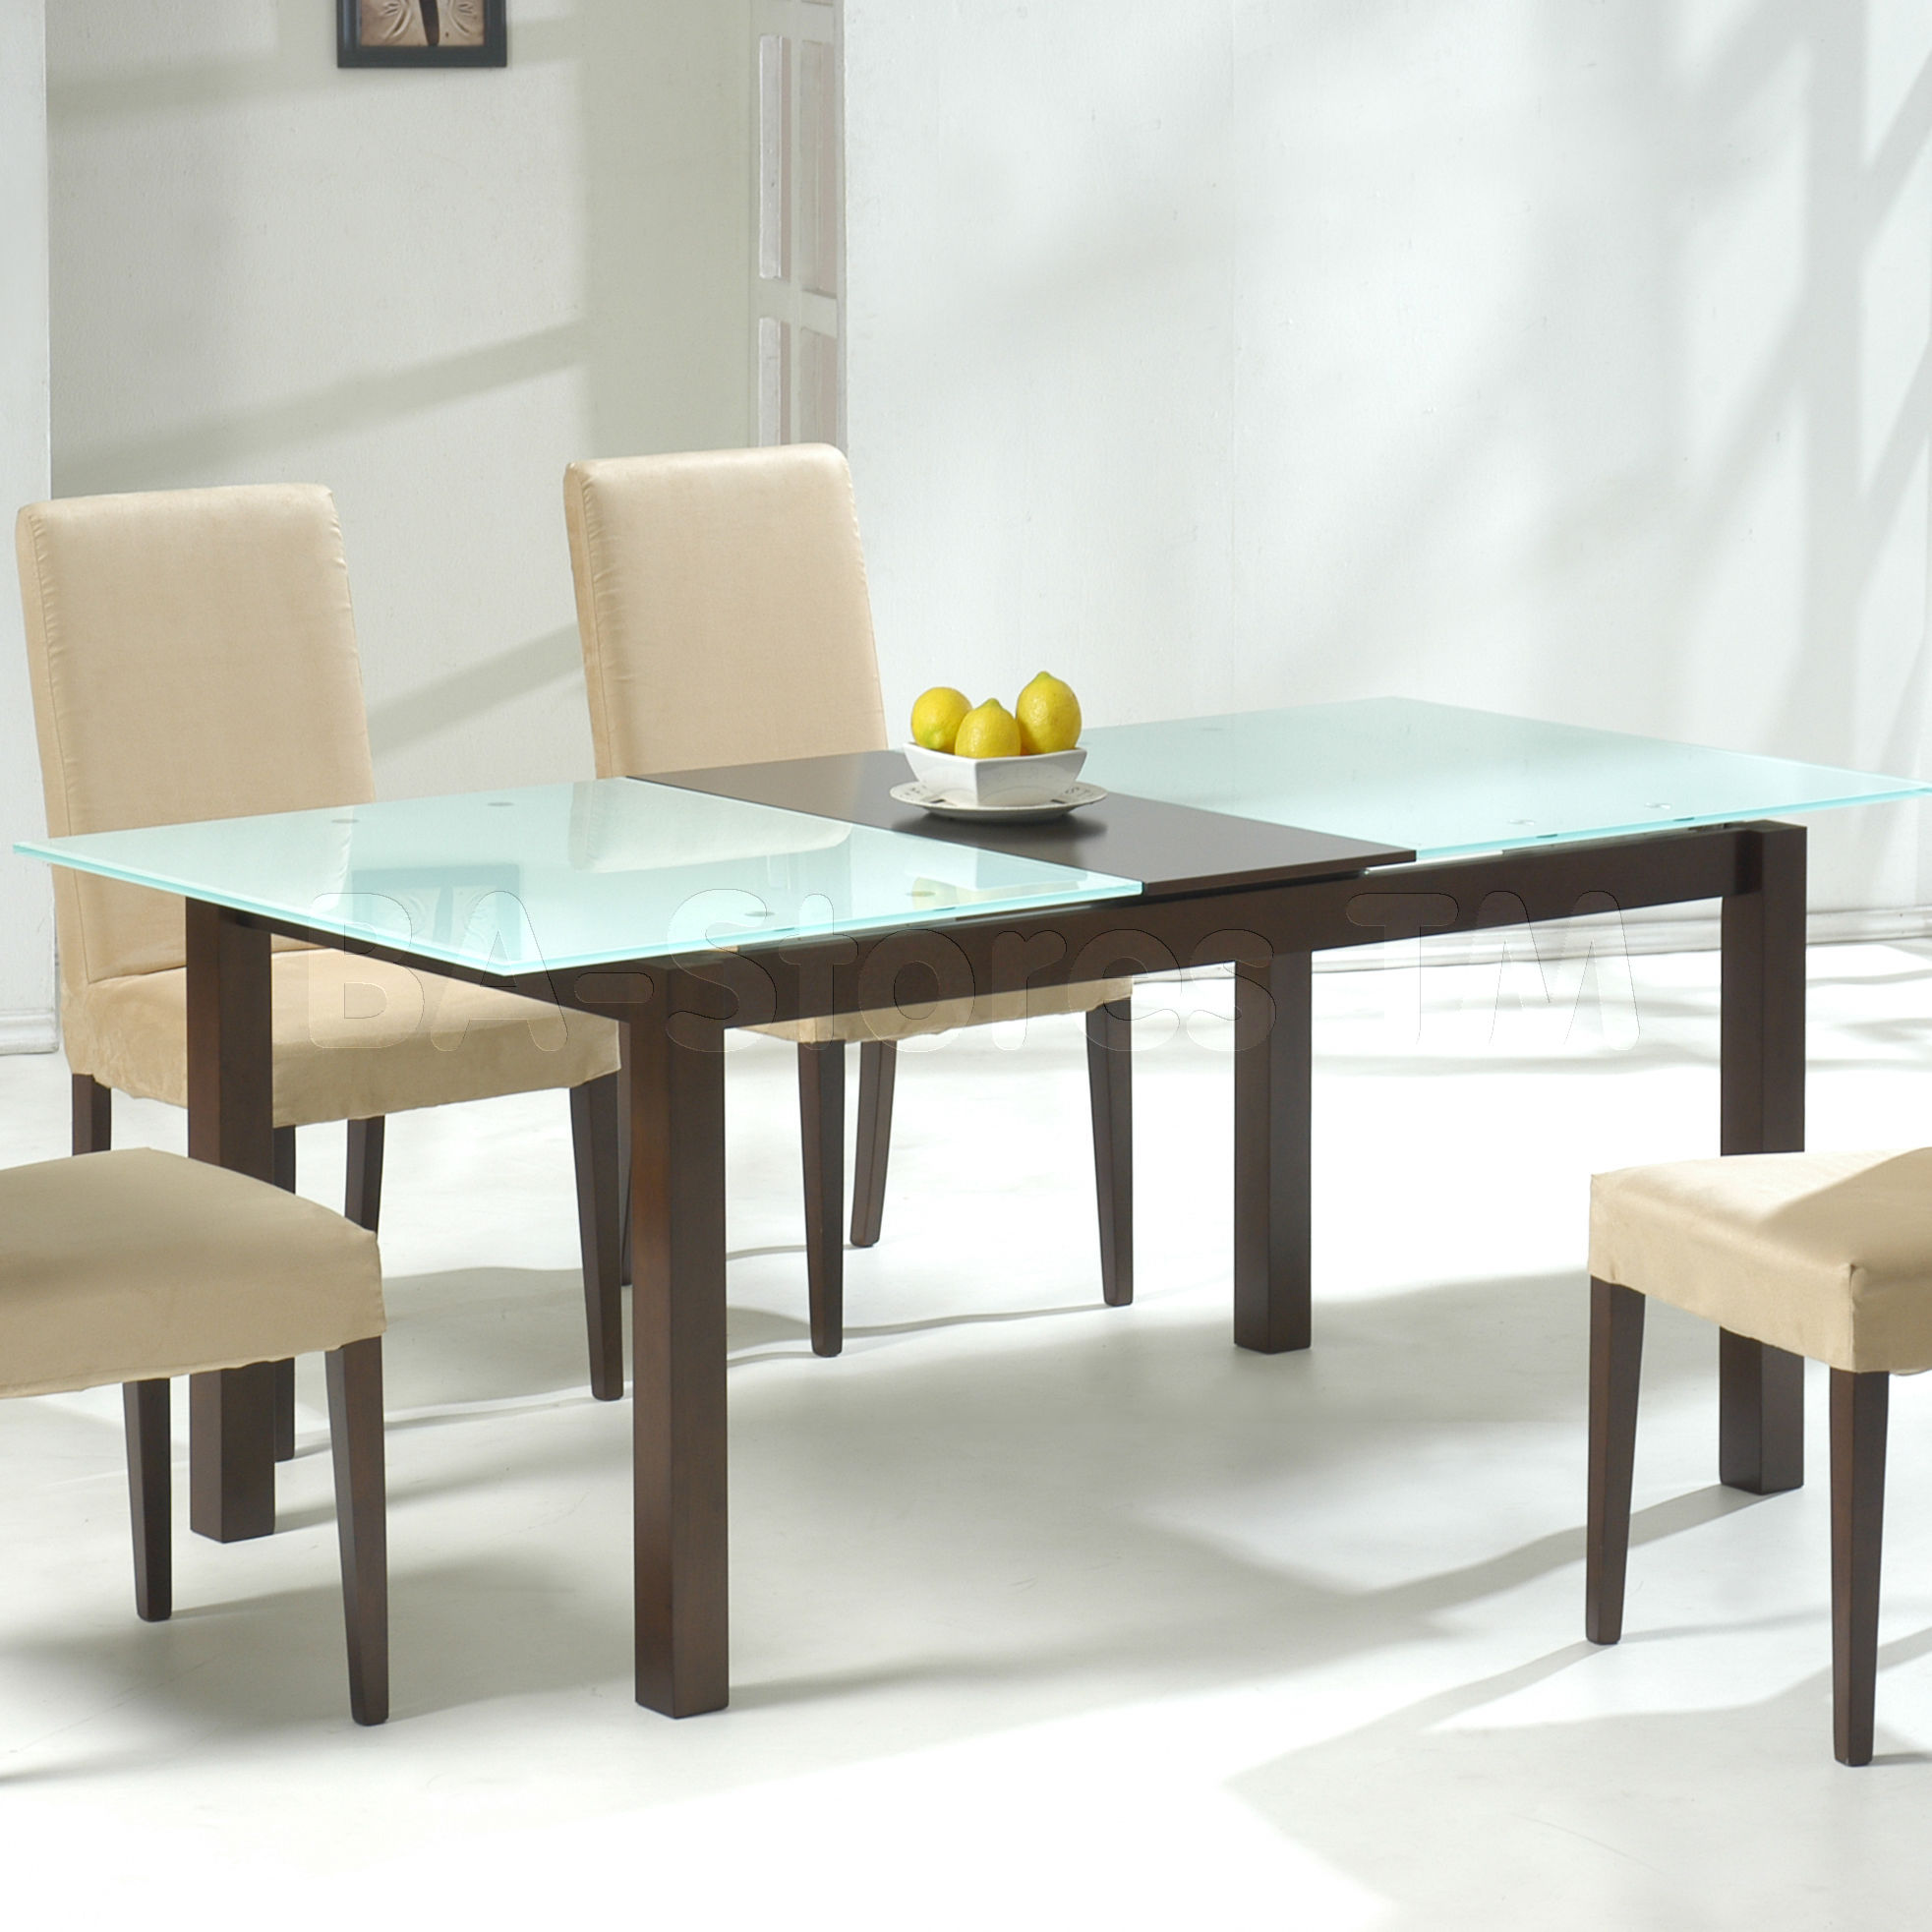 Small rectangular dining table homesfeed for Best wooden dining tables and chairs